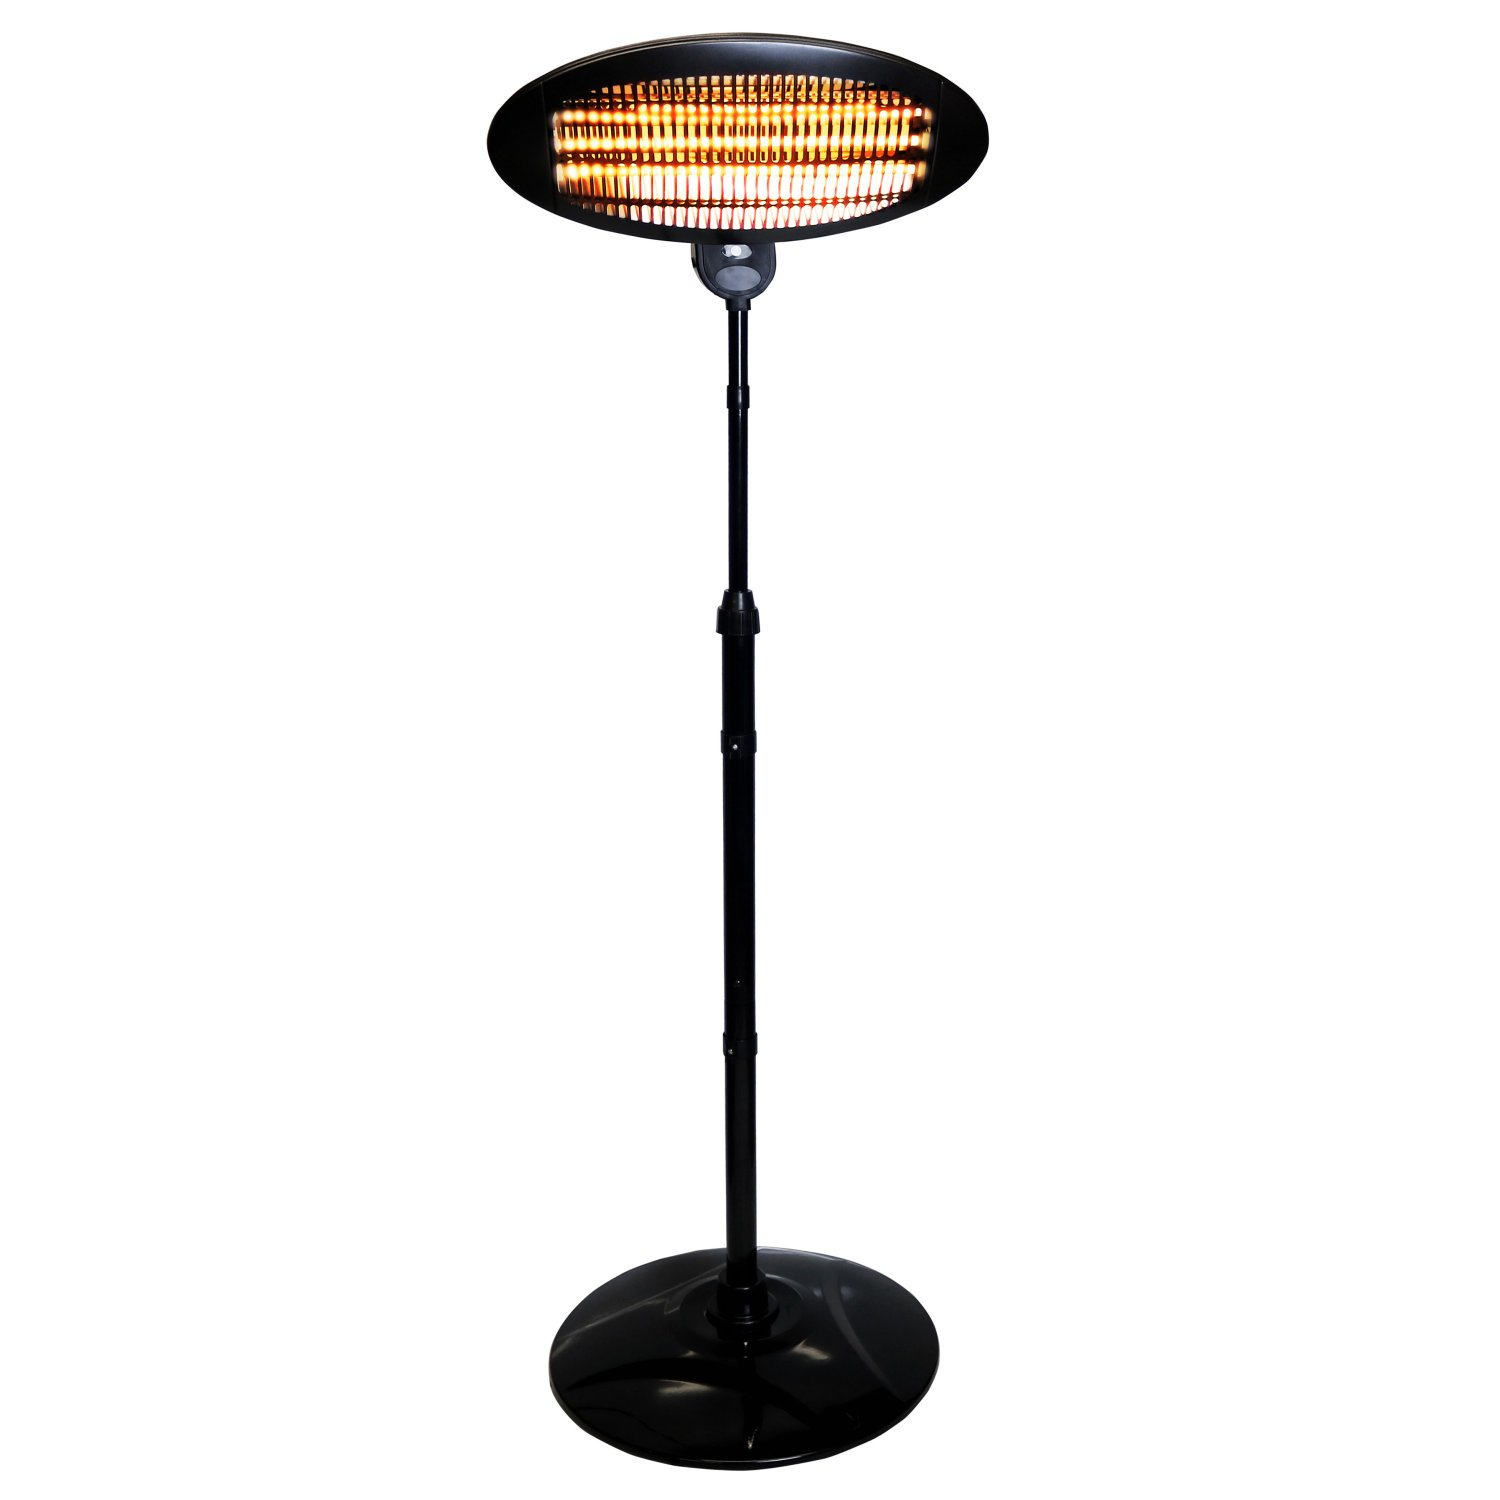 2KW Quartz Free Standing Outdoor Electric Garden Patio Heater 3999 Oypla Stocking The